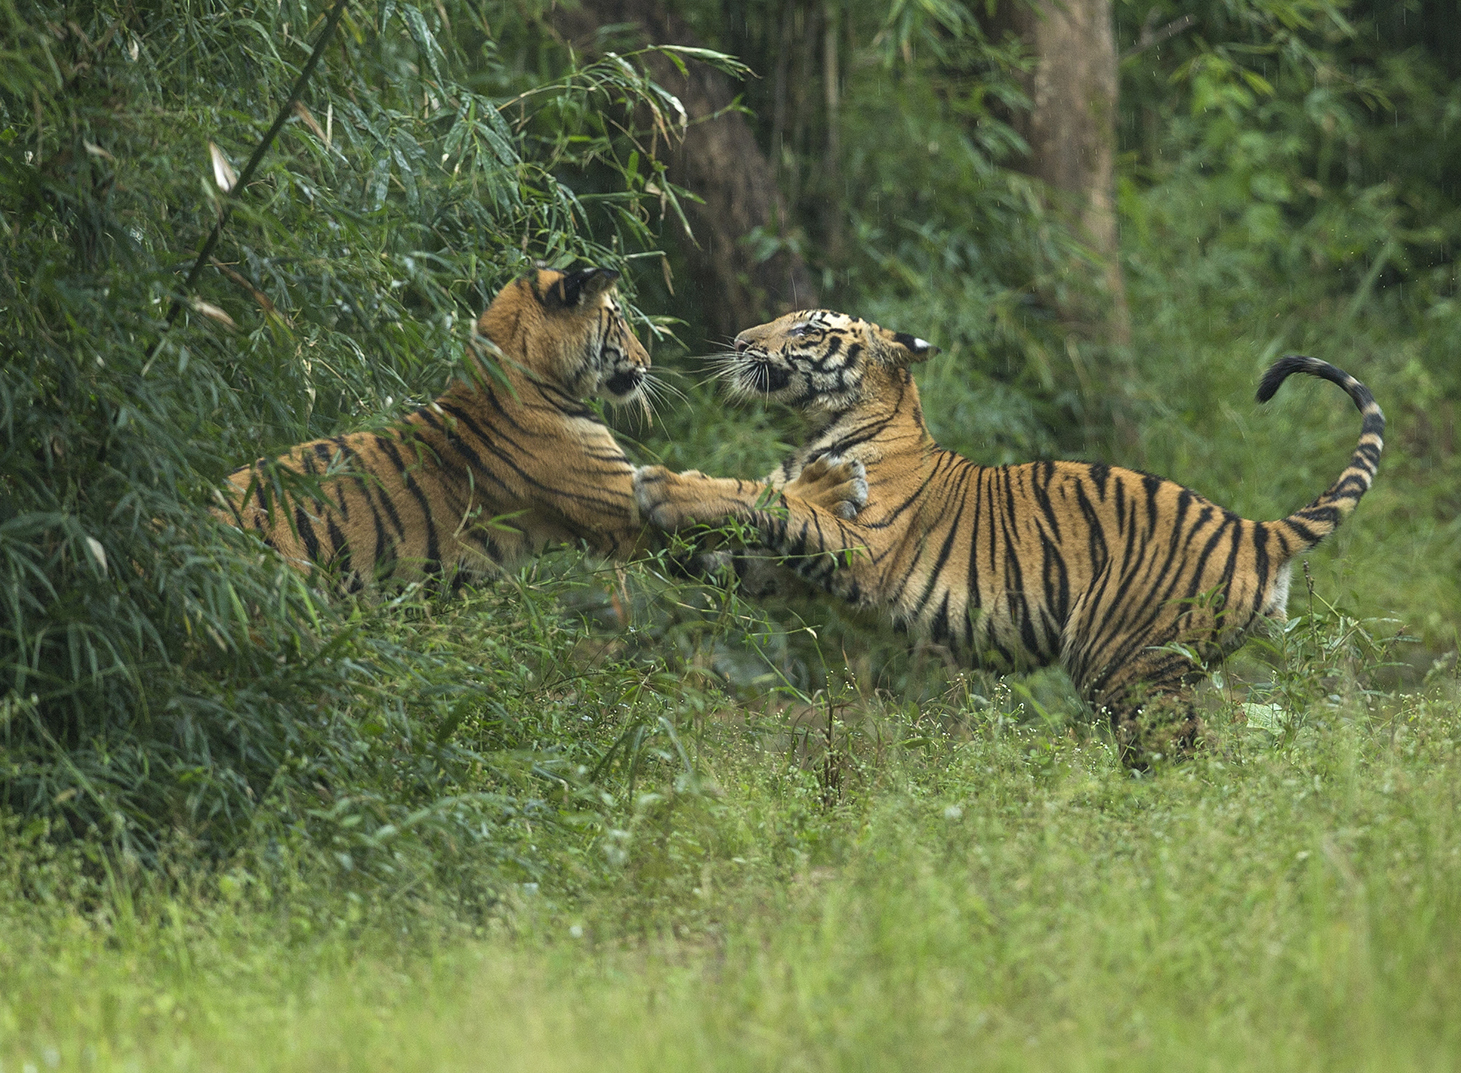 Tigers in action are often photographed more than sleeping ...